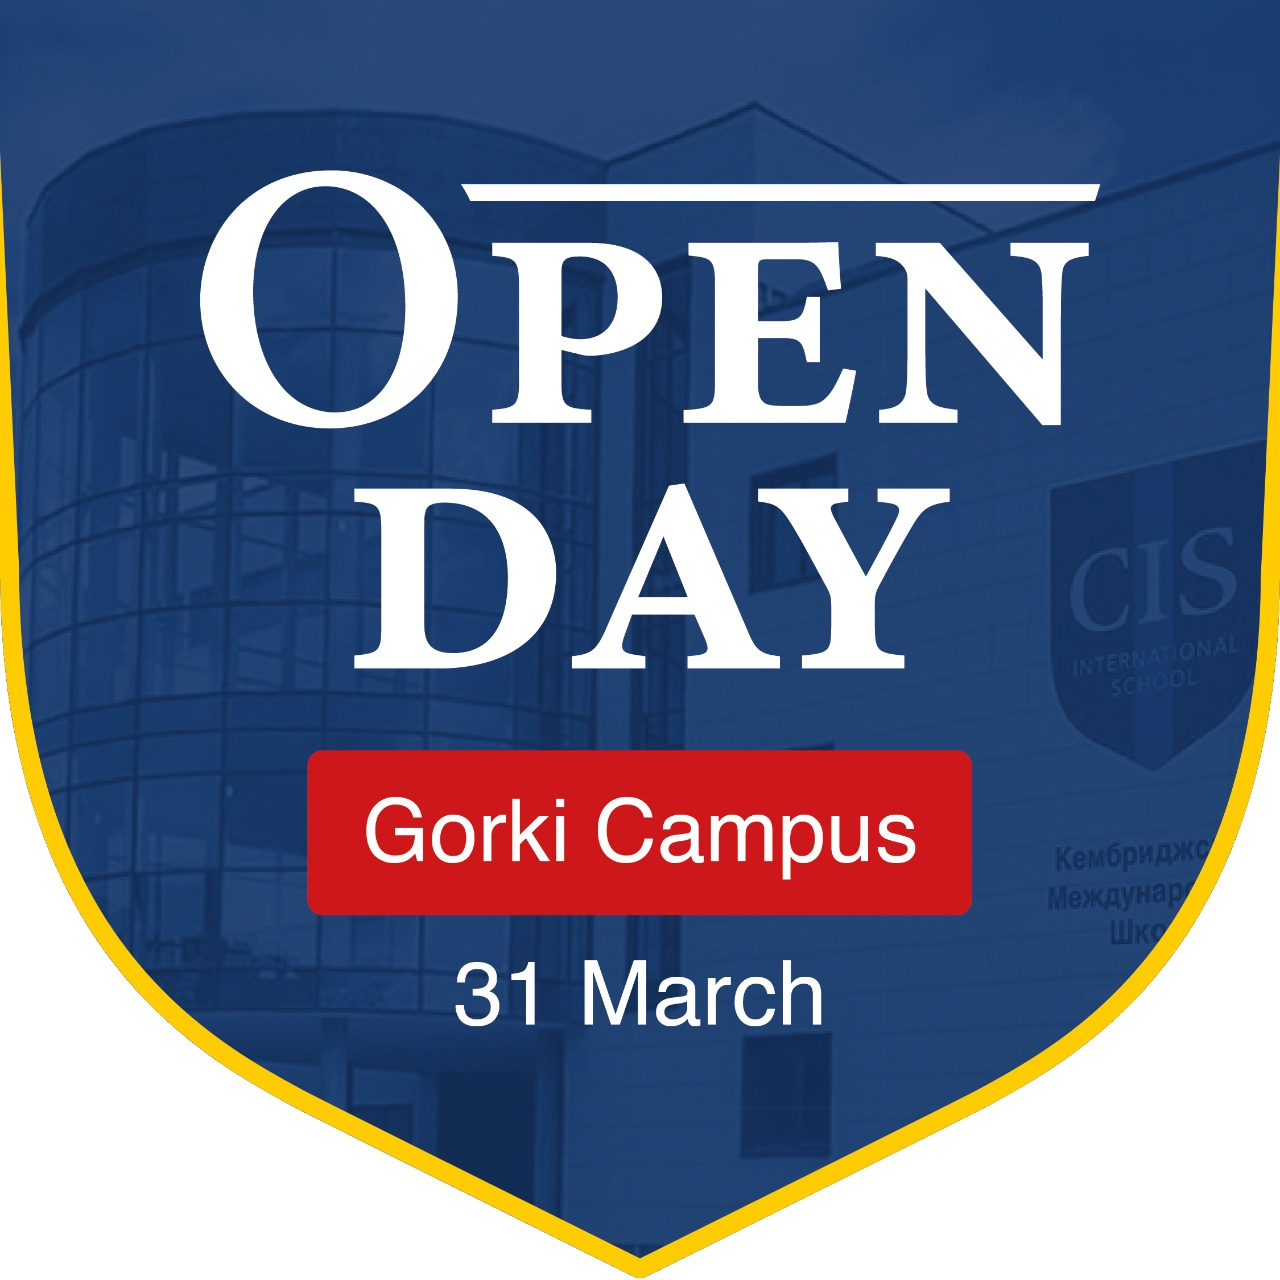 Welcome to Open day at CIS Gorki